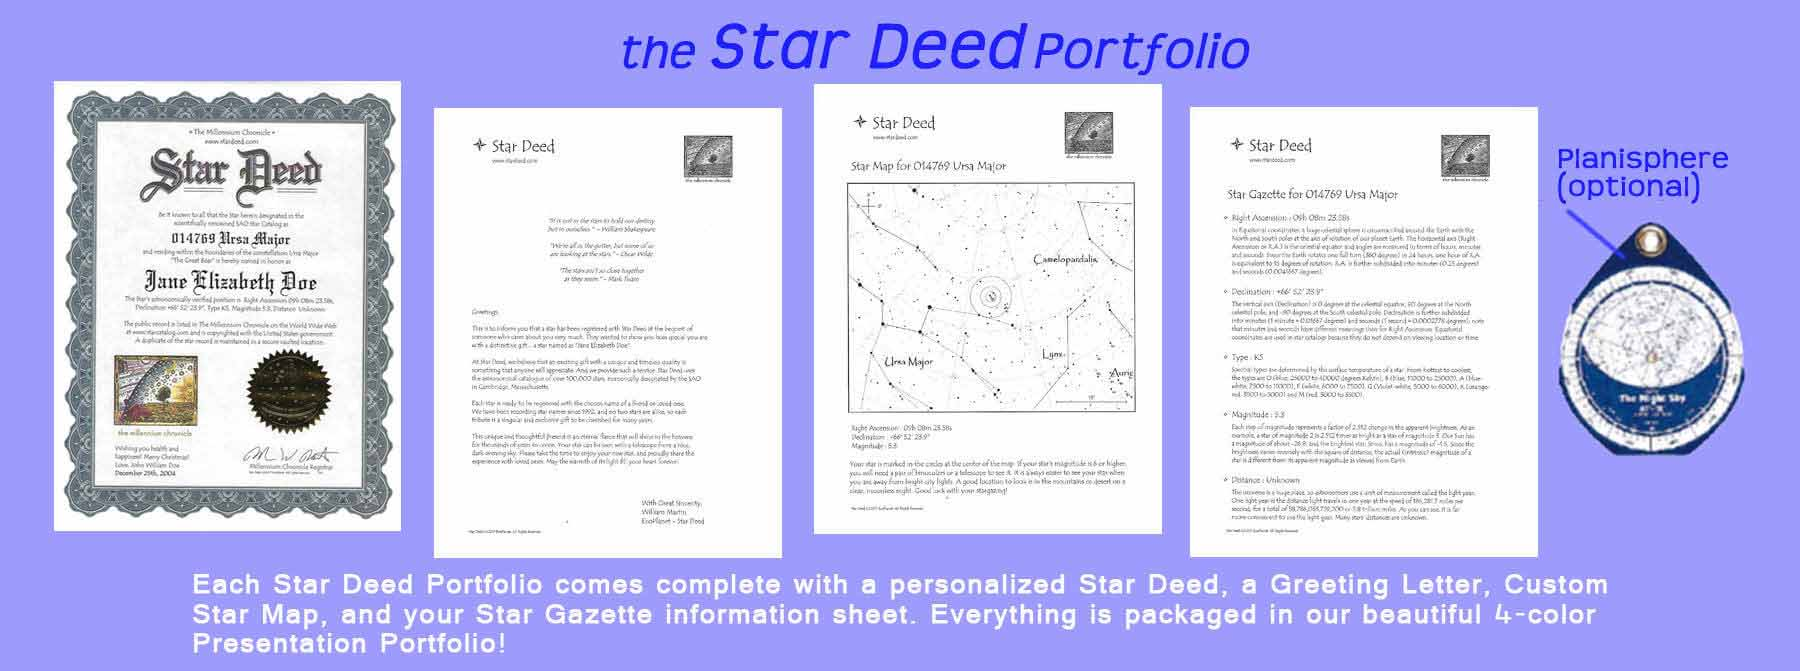 the Star Deed Portfolio